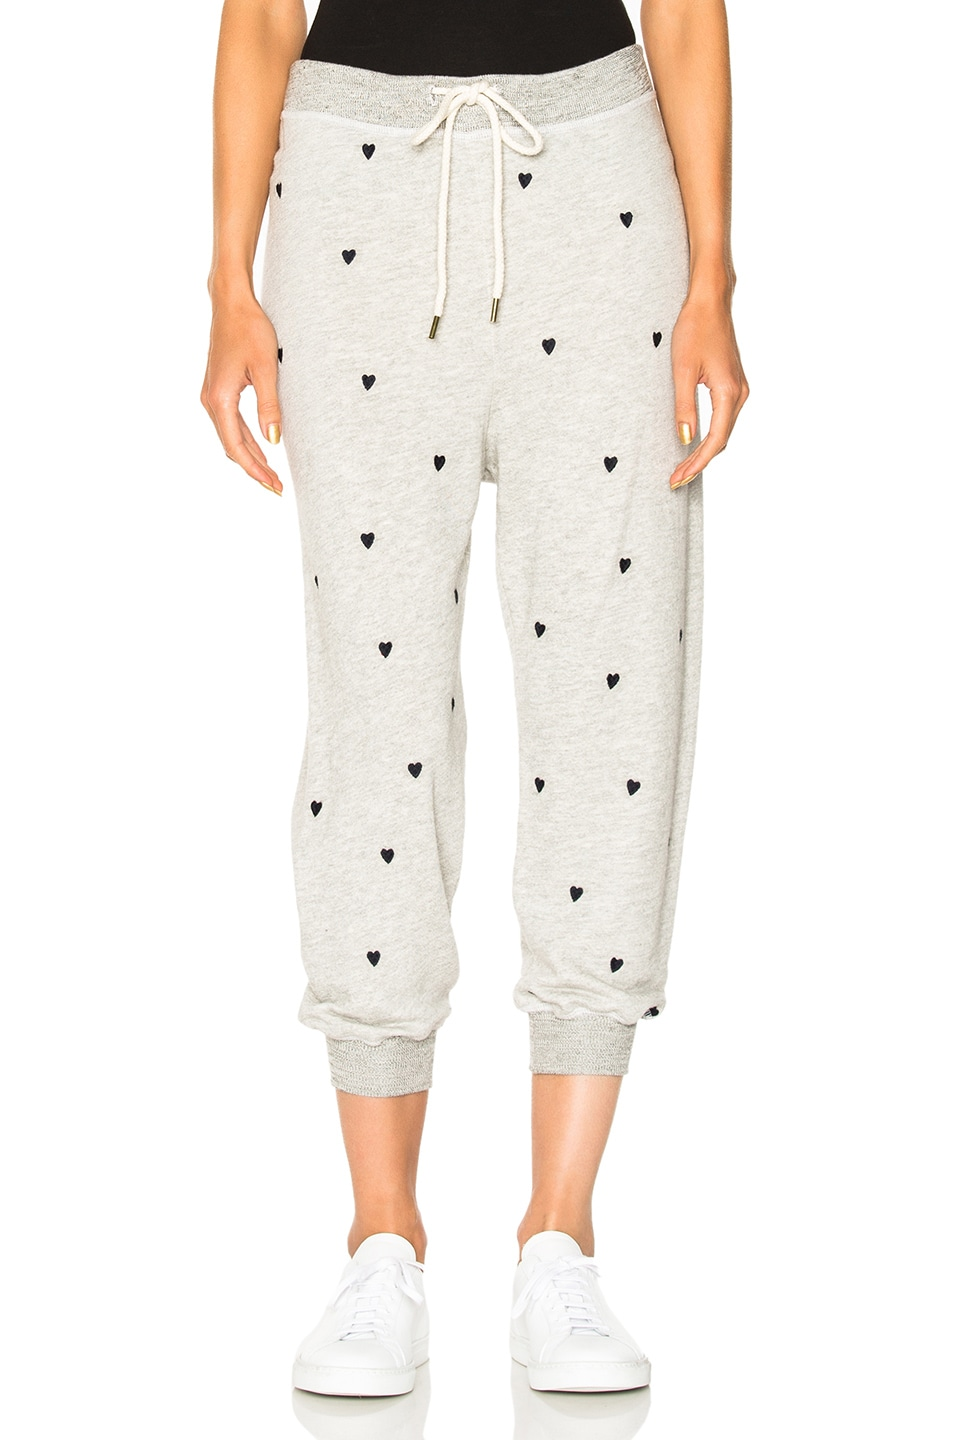 Image 1 of The Great Cropped Sweatpants in Heather Grey & Navy